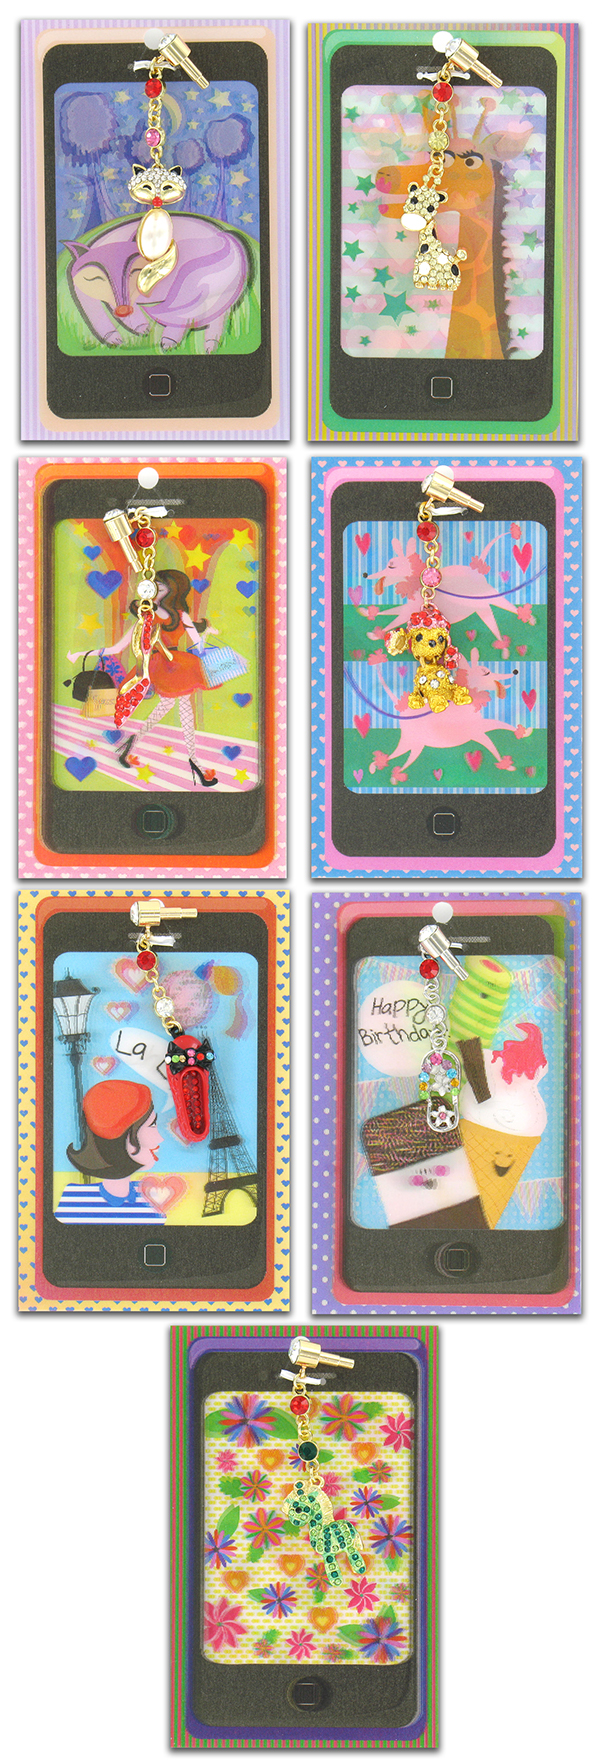 3D mobile charm cards